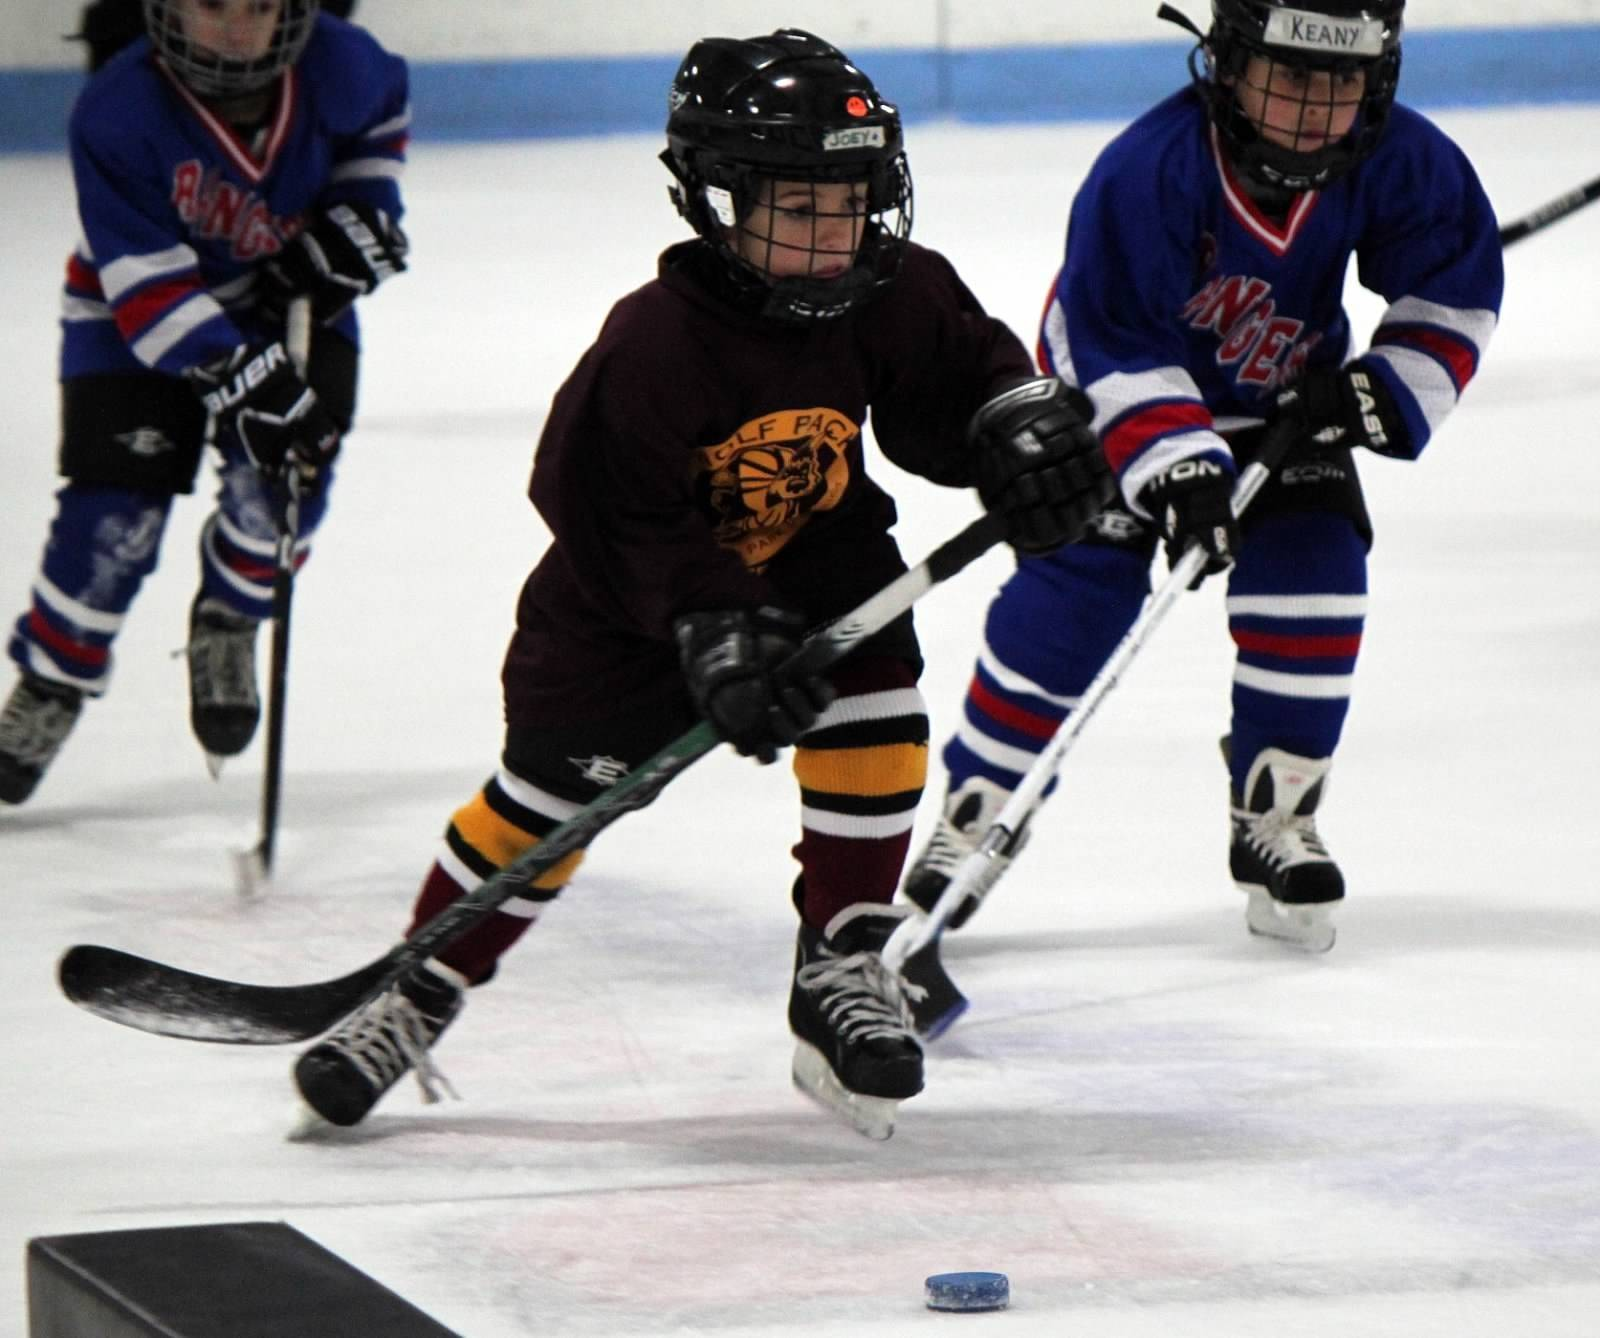 Boys and girls, ages 4-9, are invited to the Try Hockey For Free event Saturday, March 1, at the Triphahn Ice Arena, in Hoffman Estates. Register at www.tryhockeyforfree.com.